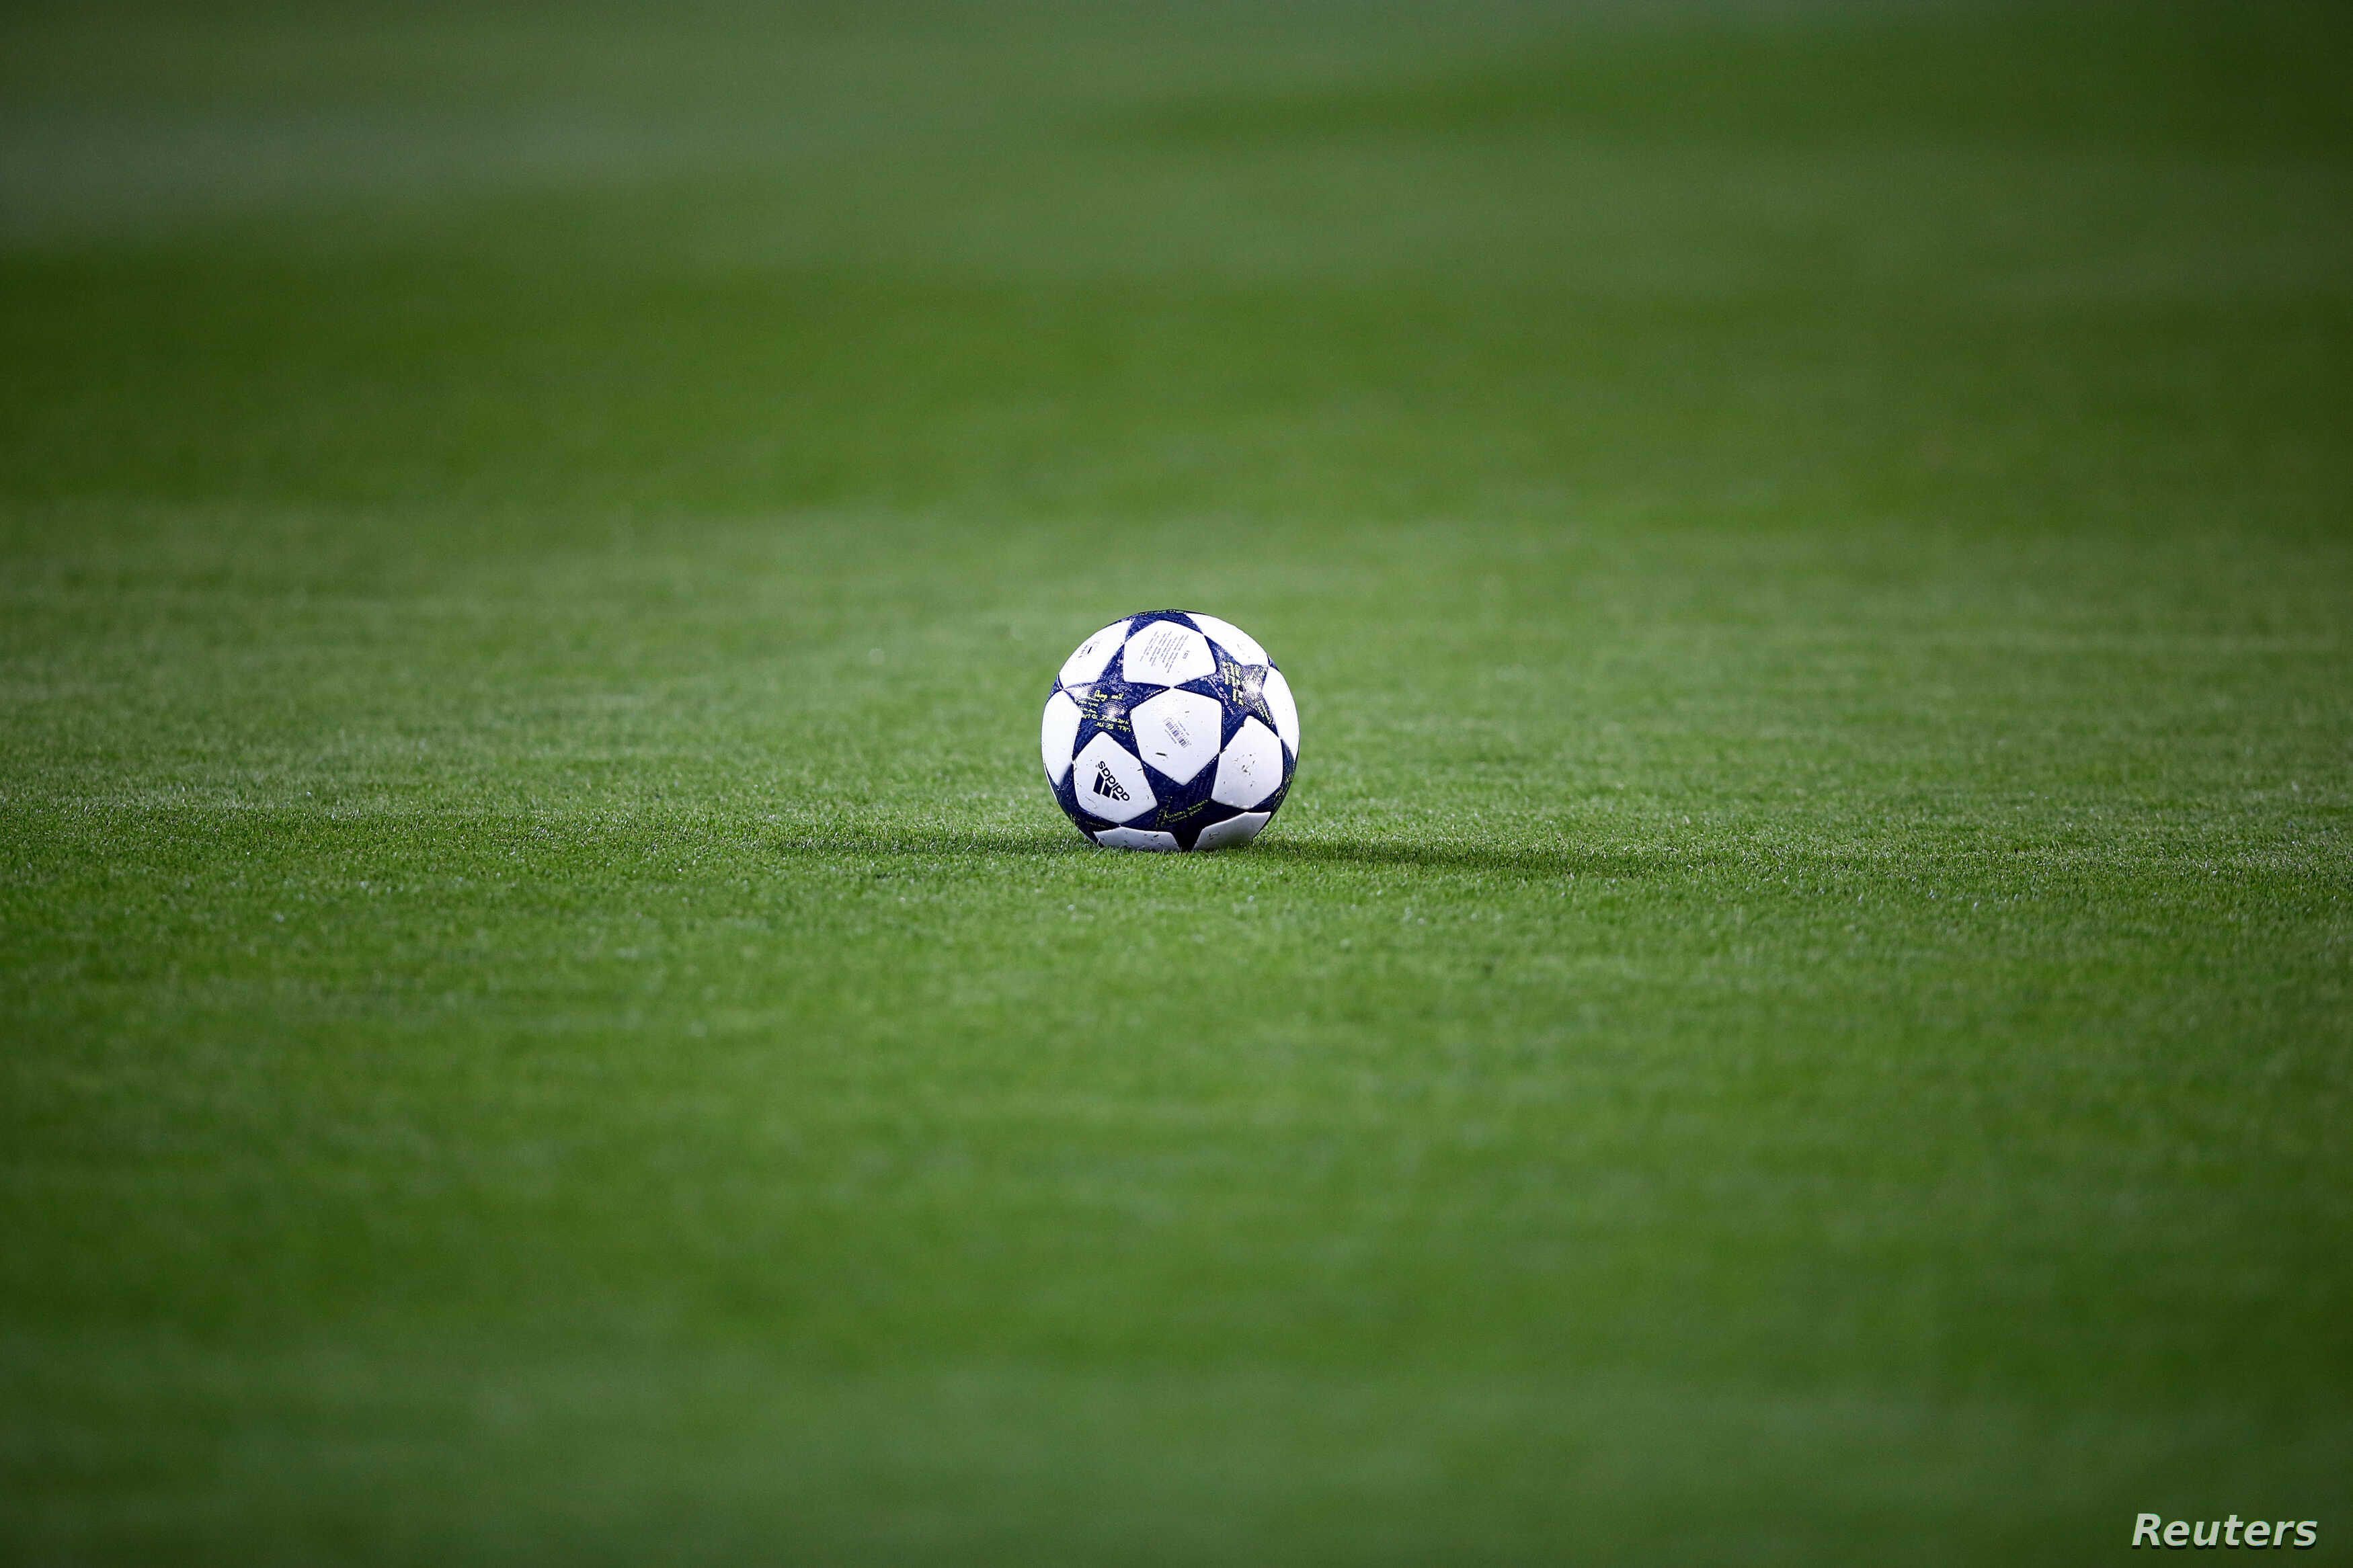 FILE - A soccer ball is seen on the pitch before kick off between Borussia Dortmund and Sporting Lisbon, Feb. 11, 2016.